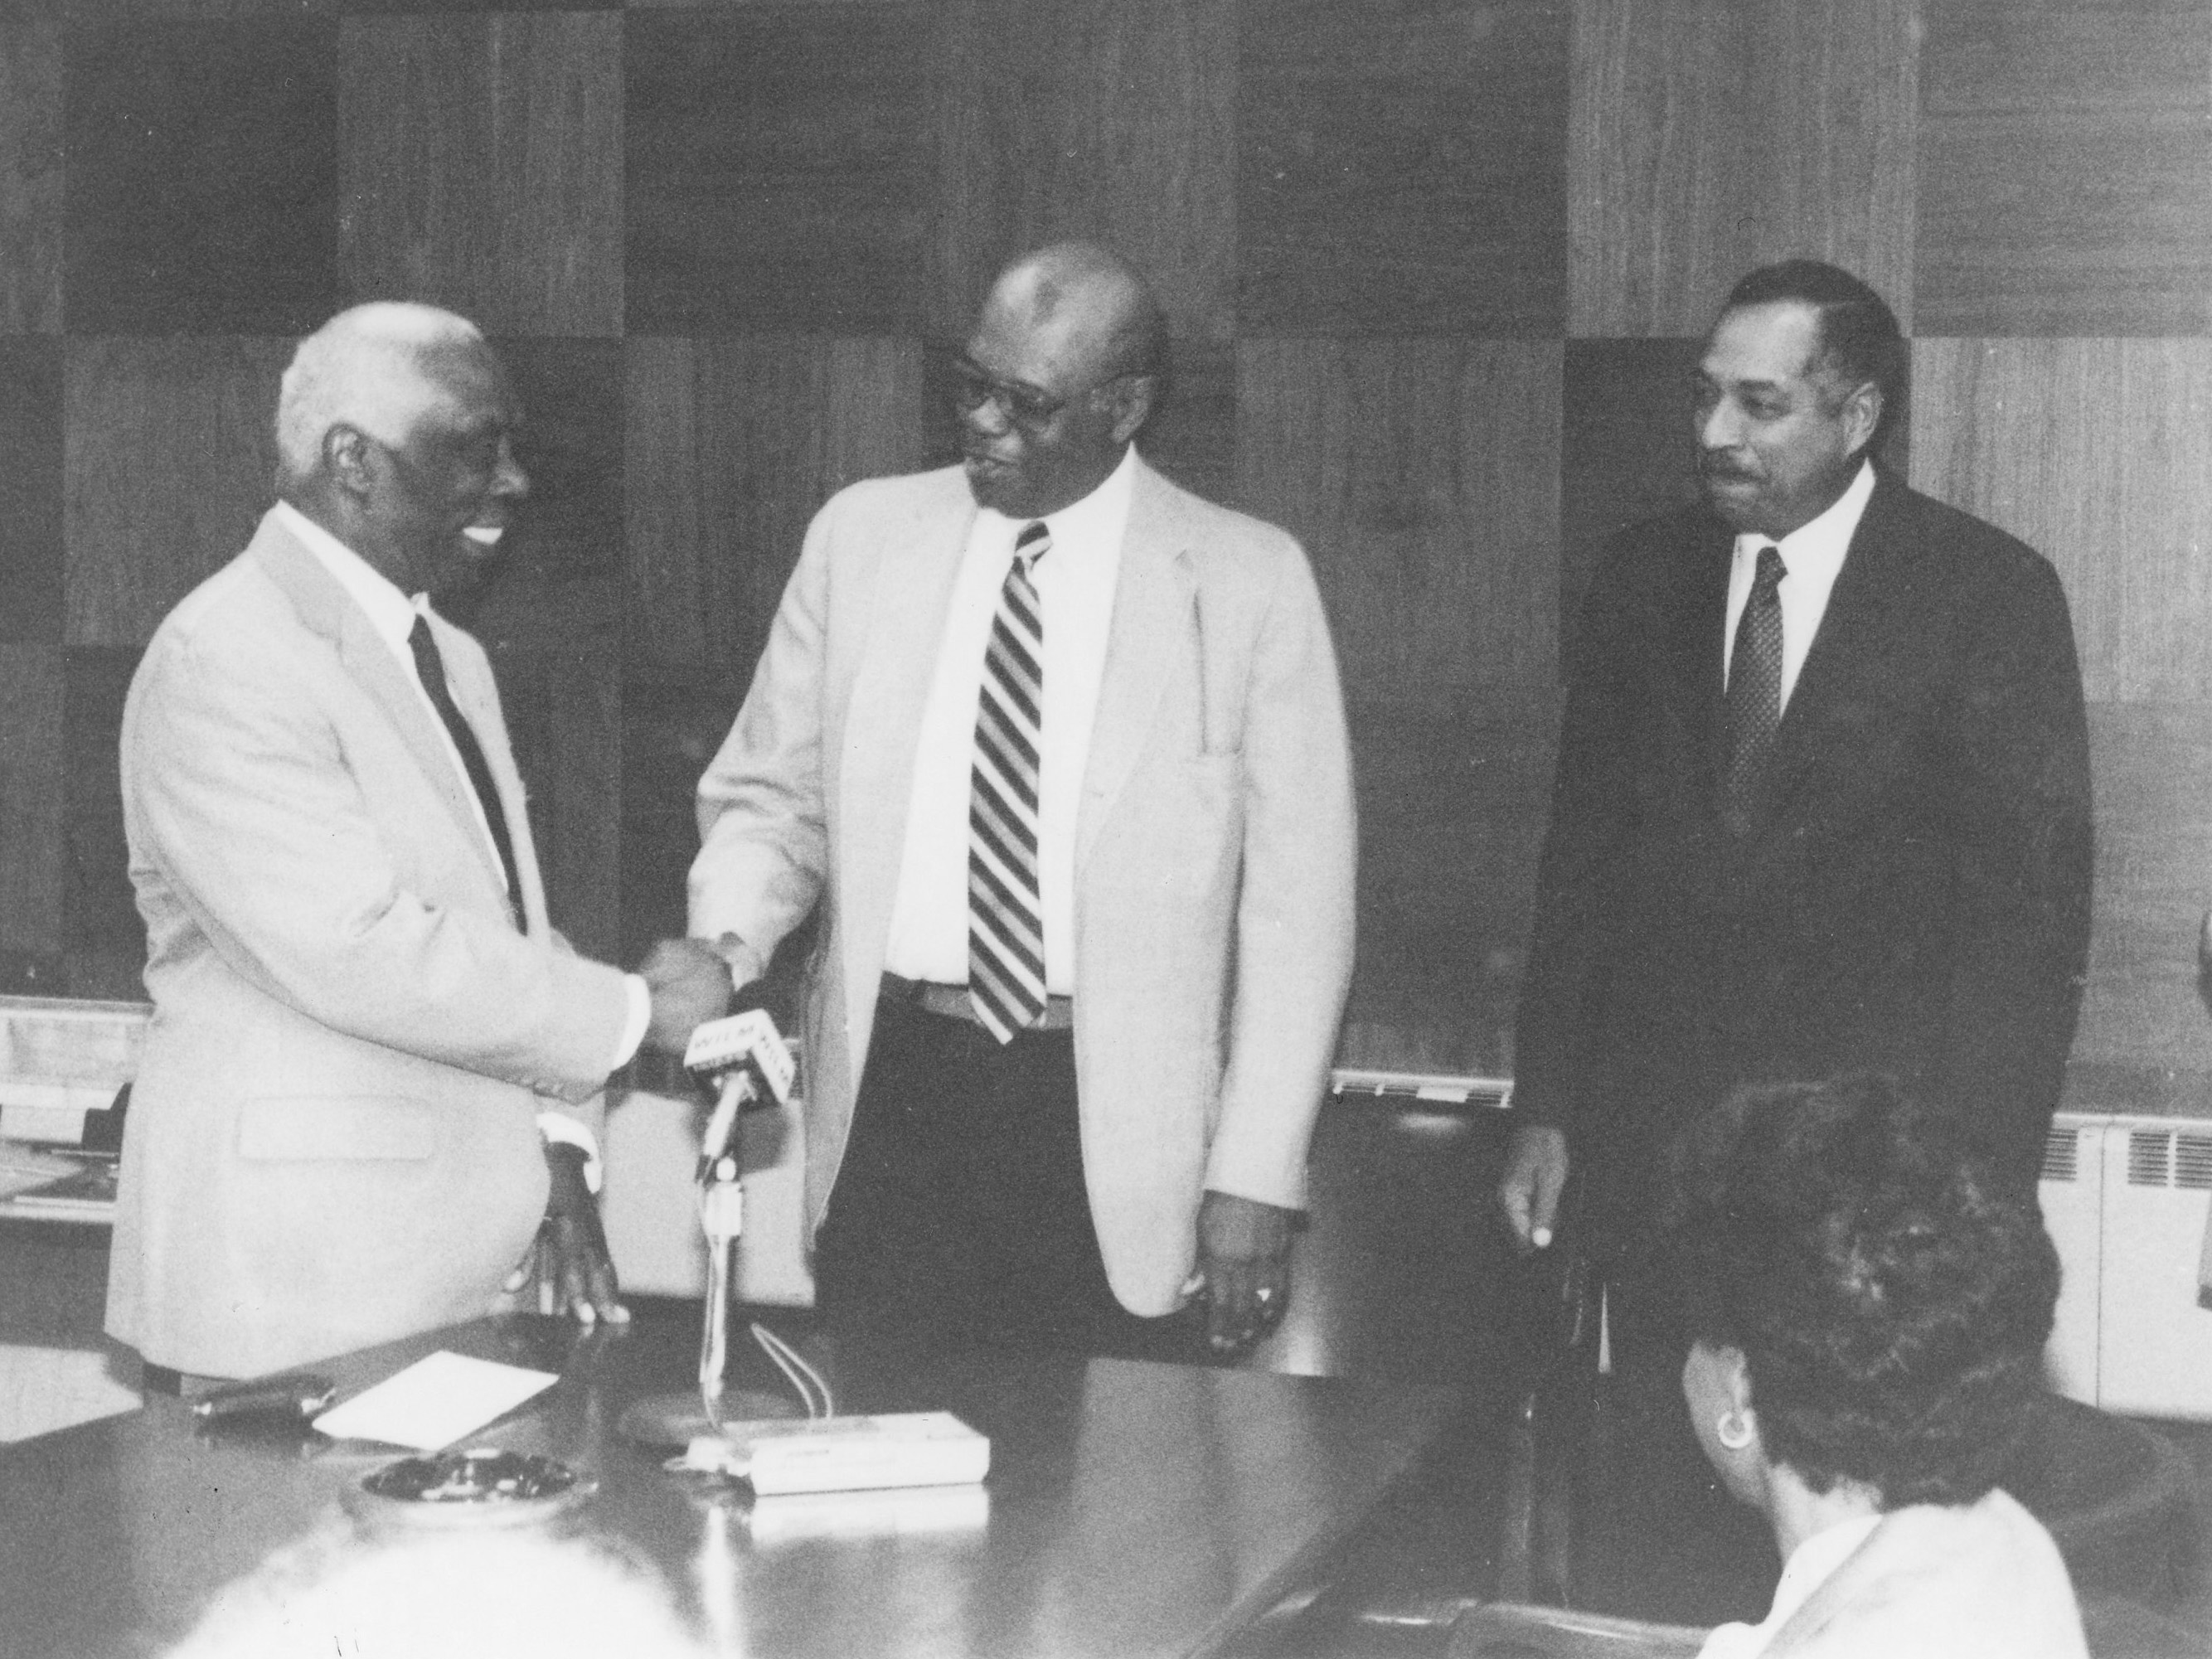 The historic 1987 passing of the presidential torch between then-outgoing DSC President Luna I. Mishoe (l) and his successor Dr. William B. DeLauder (r). Then-Board of Trustees President William Dix (center) shakes Dr. Mishoe's hand.